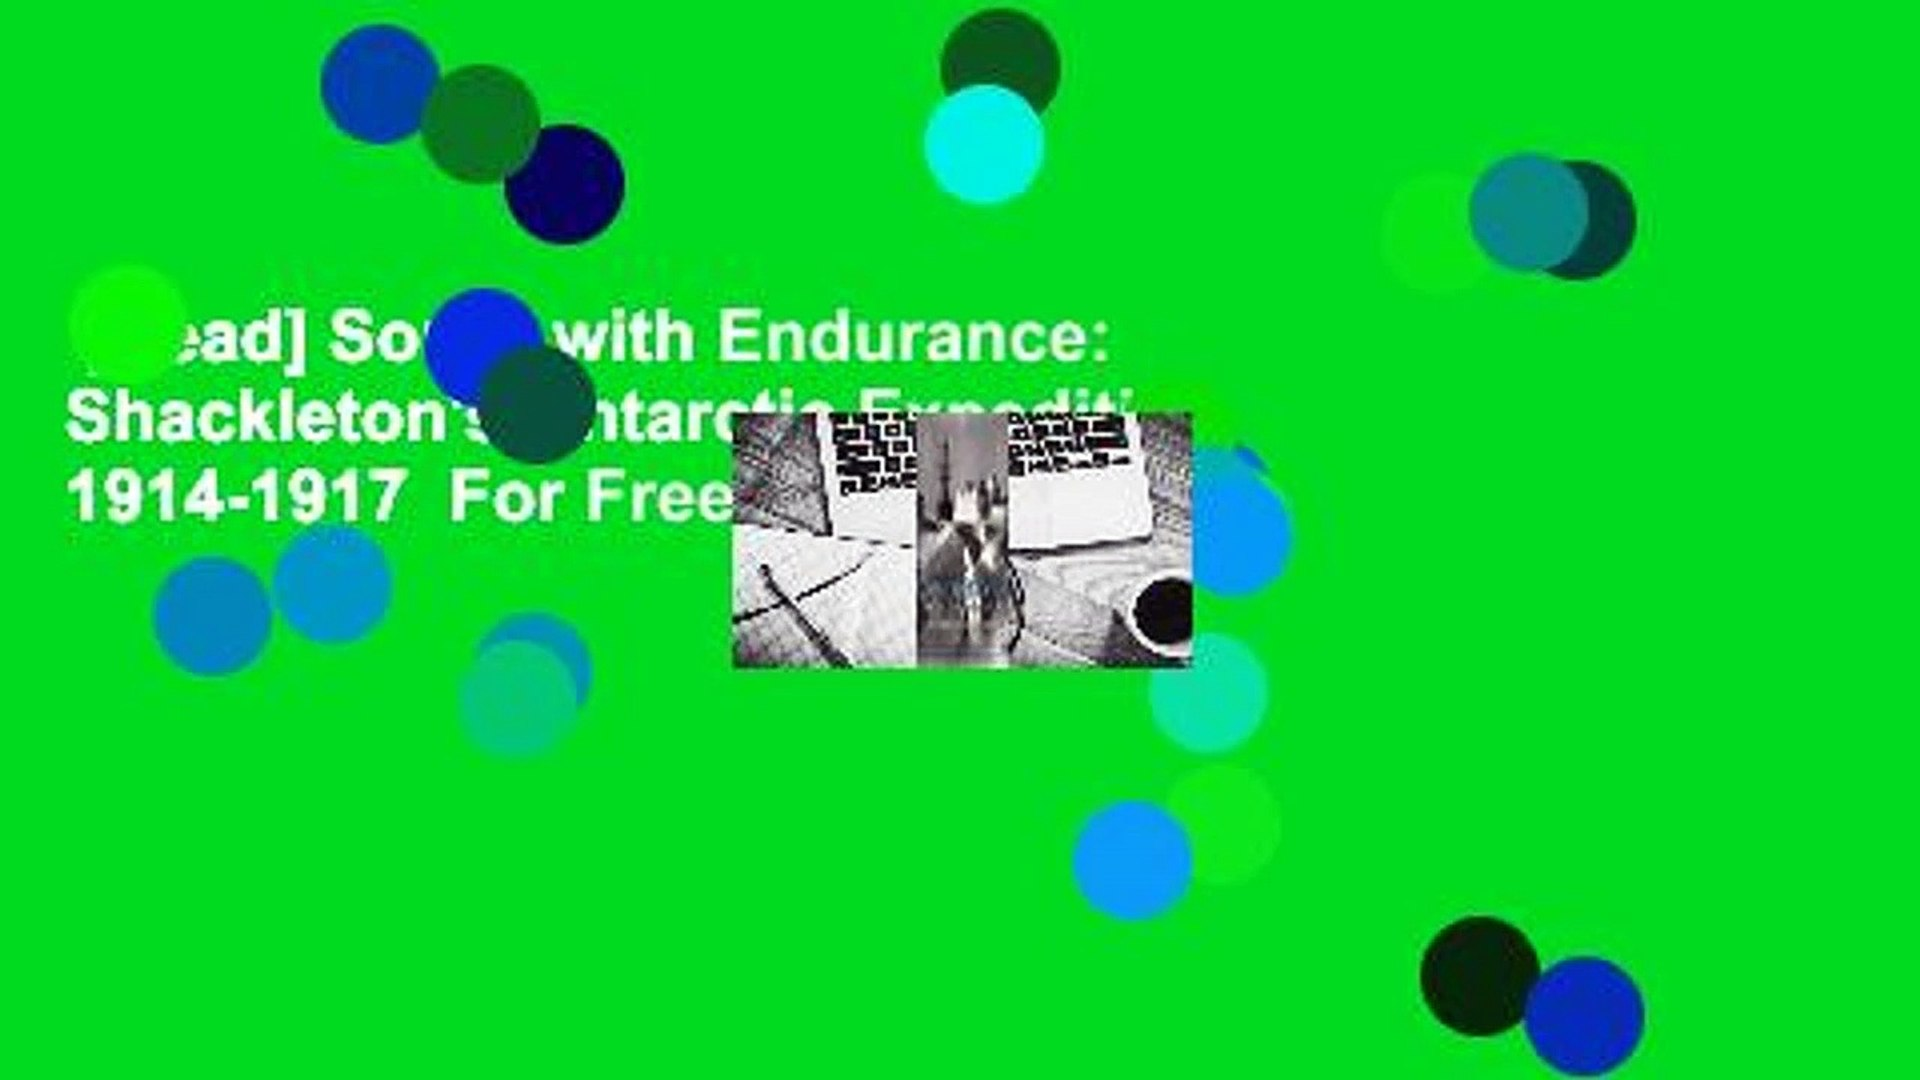 [Read] South with Endurance: Shackleton's Antarctic Expedition 1914-1917  For Free